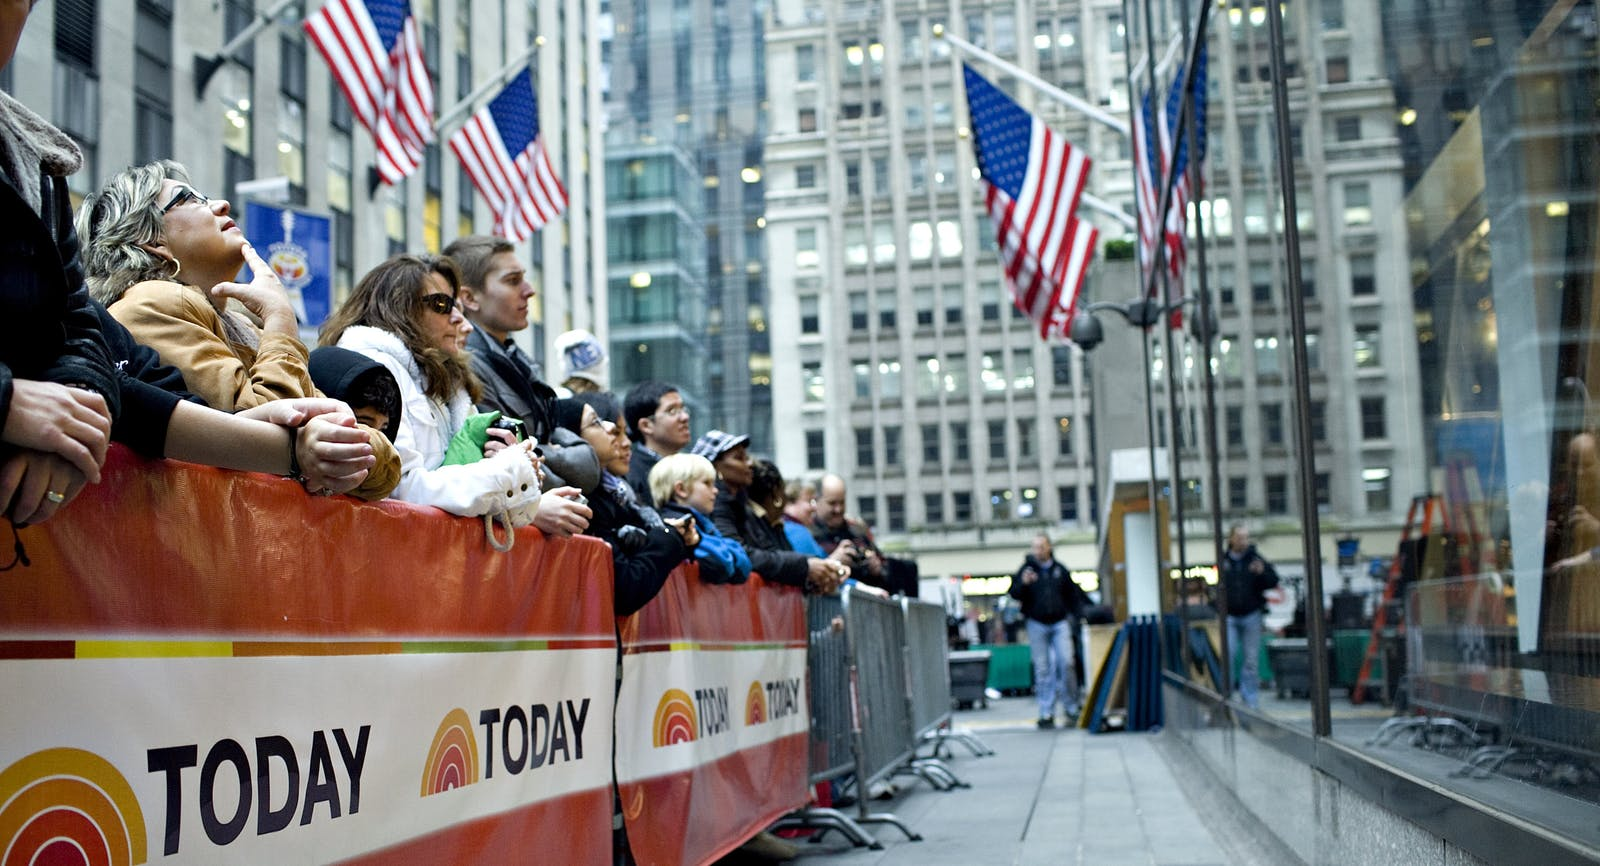 NBC folded its one-time digital gem iVillage into Today.com. Photo by Bloomberg.